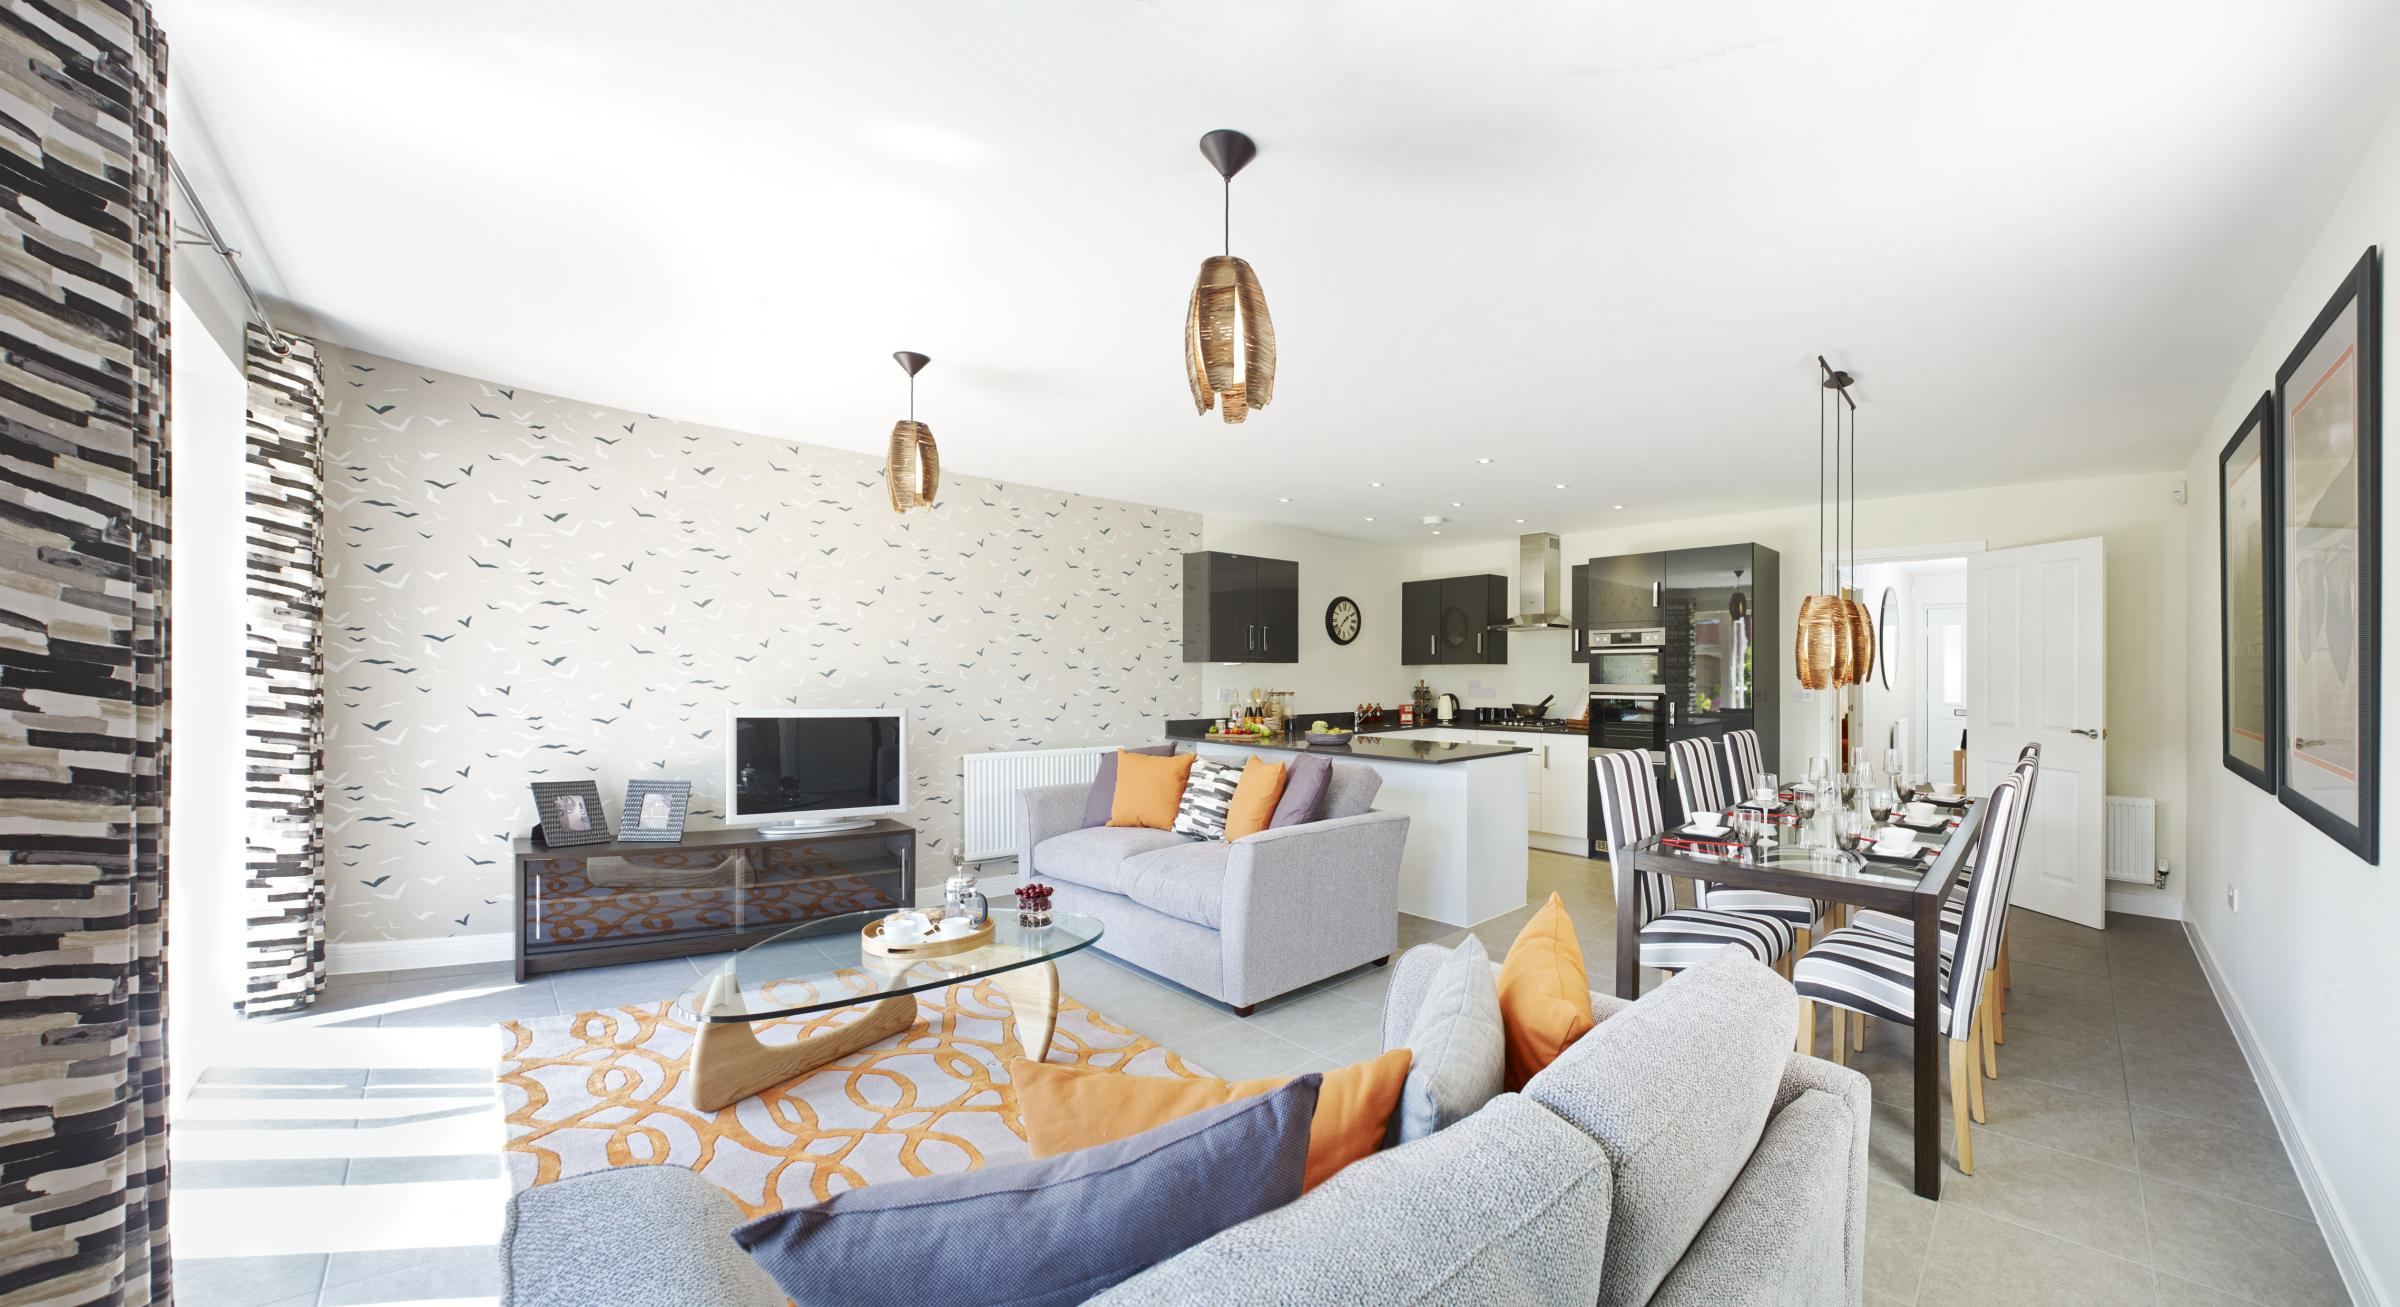 Bellway Homes 2 Bedroom Apartment. 2 bedroom ex showhome by bellway ...